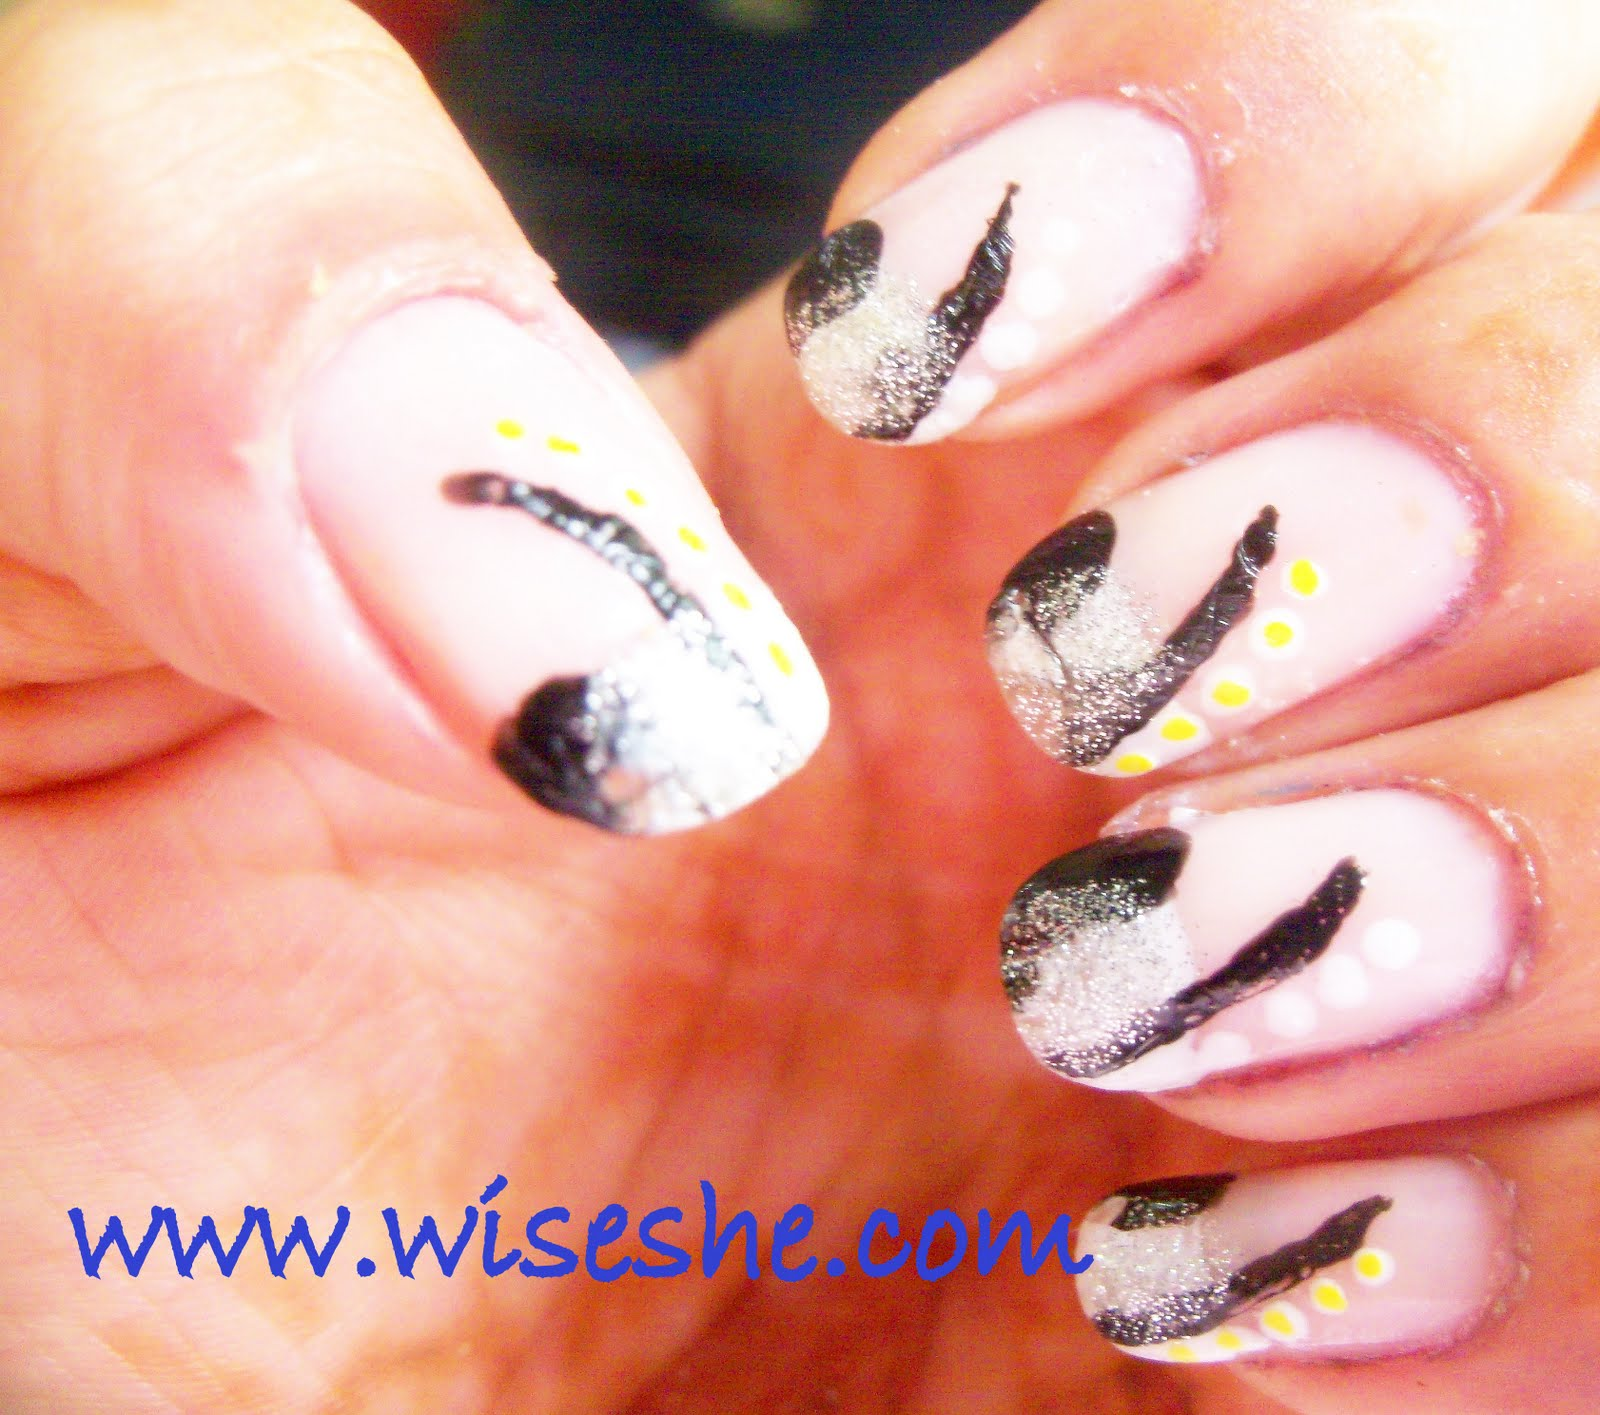 Hand Painted Nail Art Designs: NOTD-Hand Painted Nail Art Design